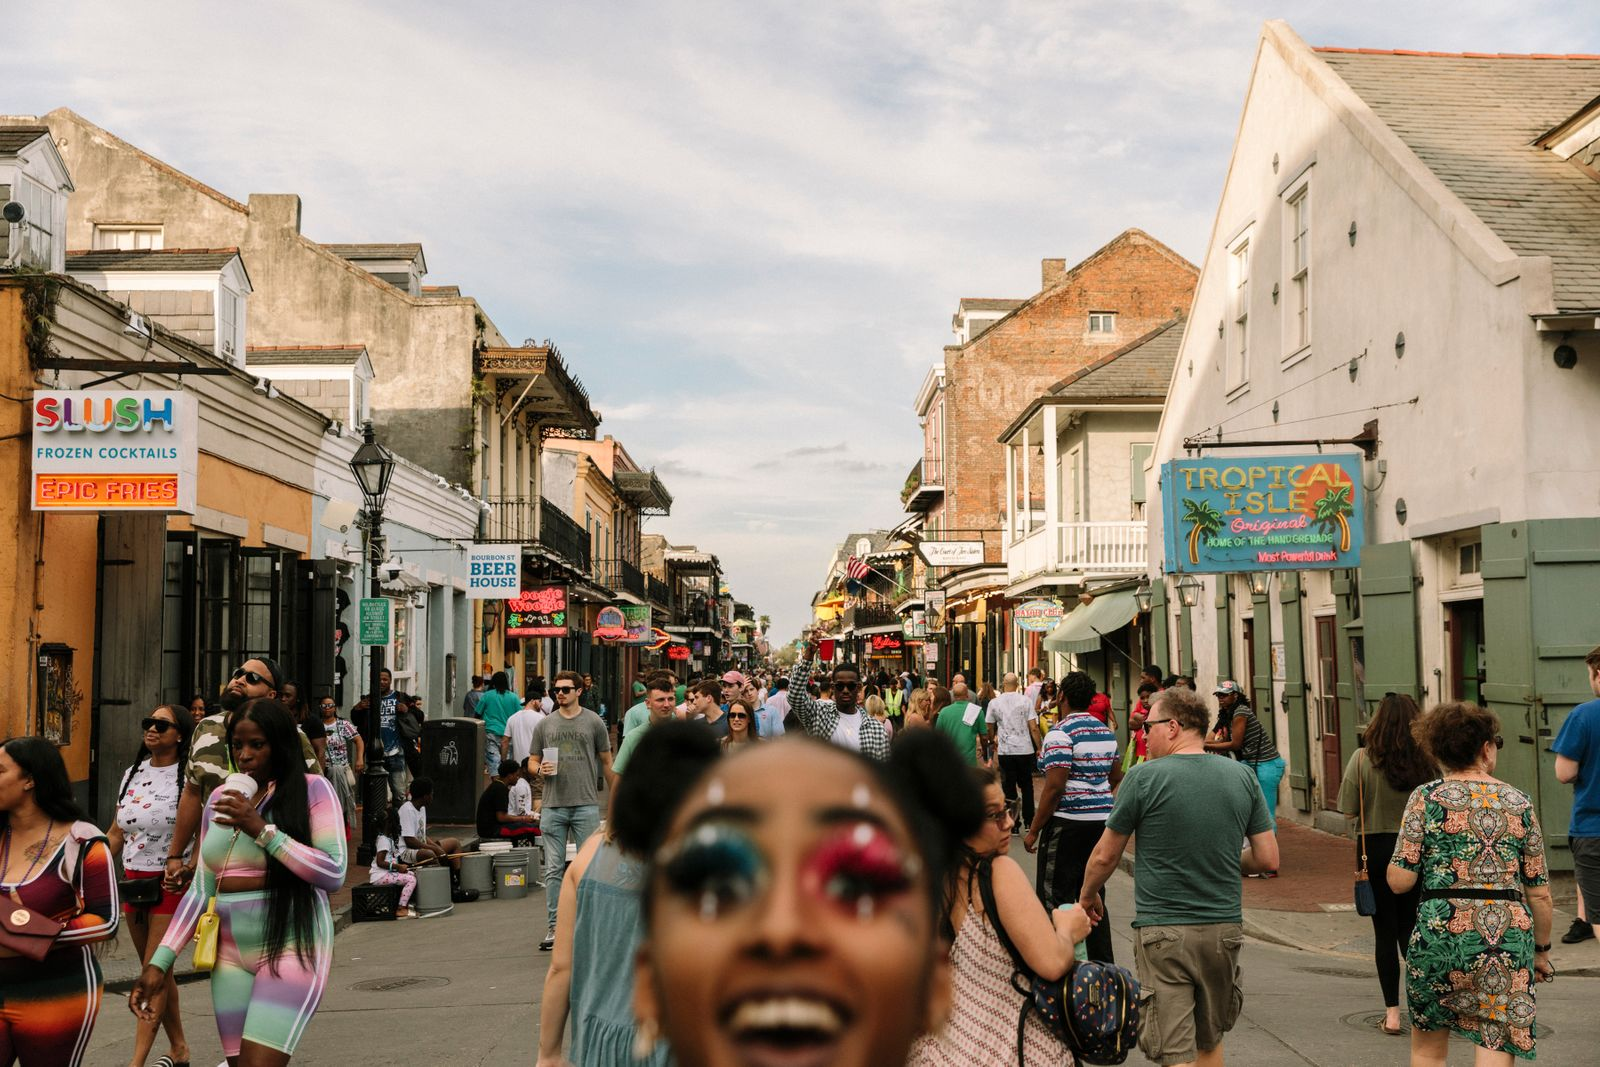 People walk through Bourbon Street in New Orleans, March 15, 2020. (William Widmer/The New York Times)